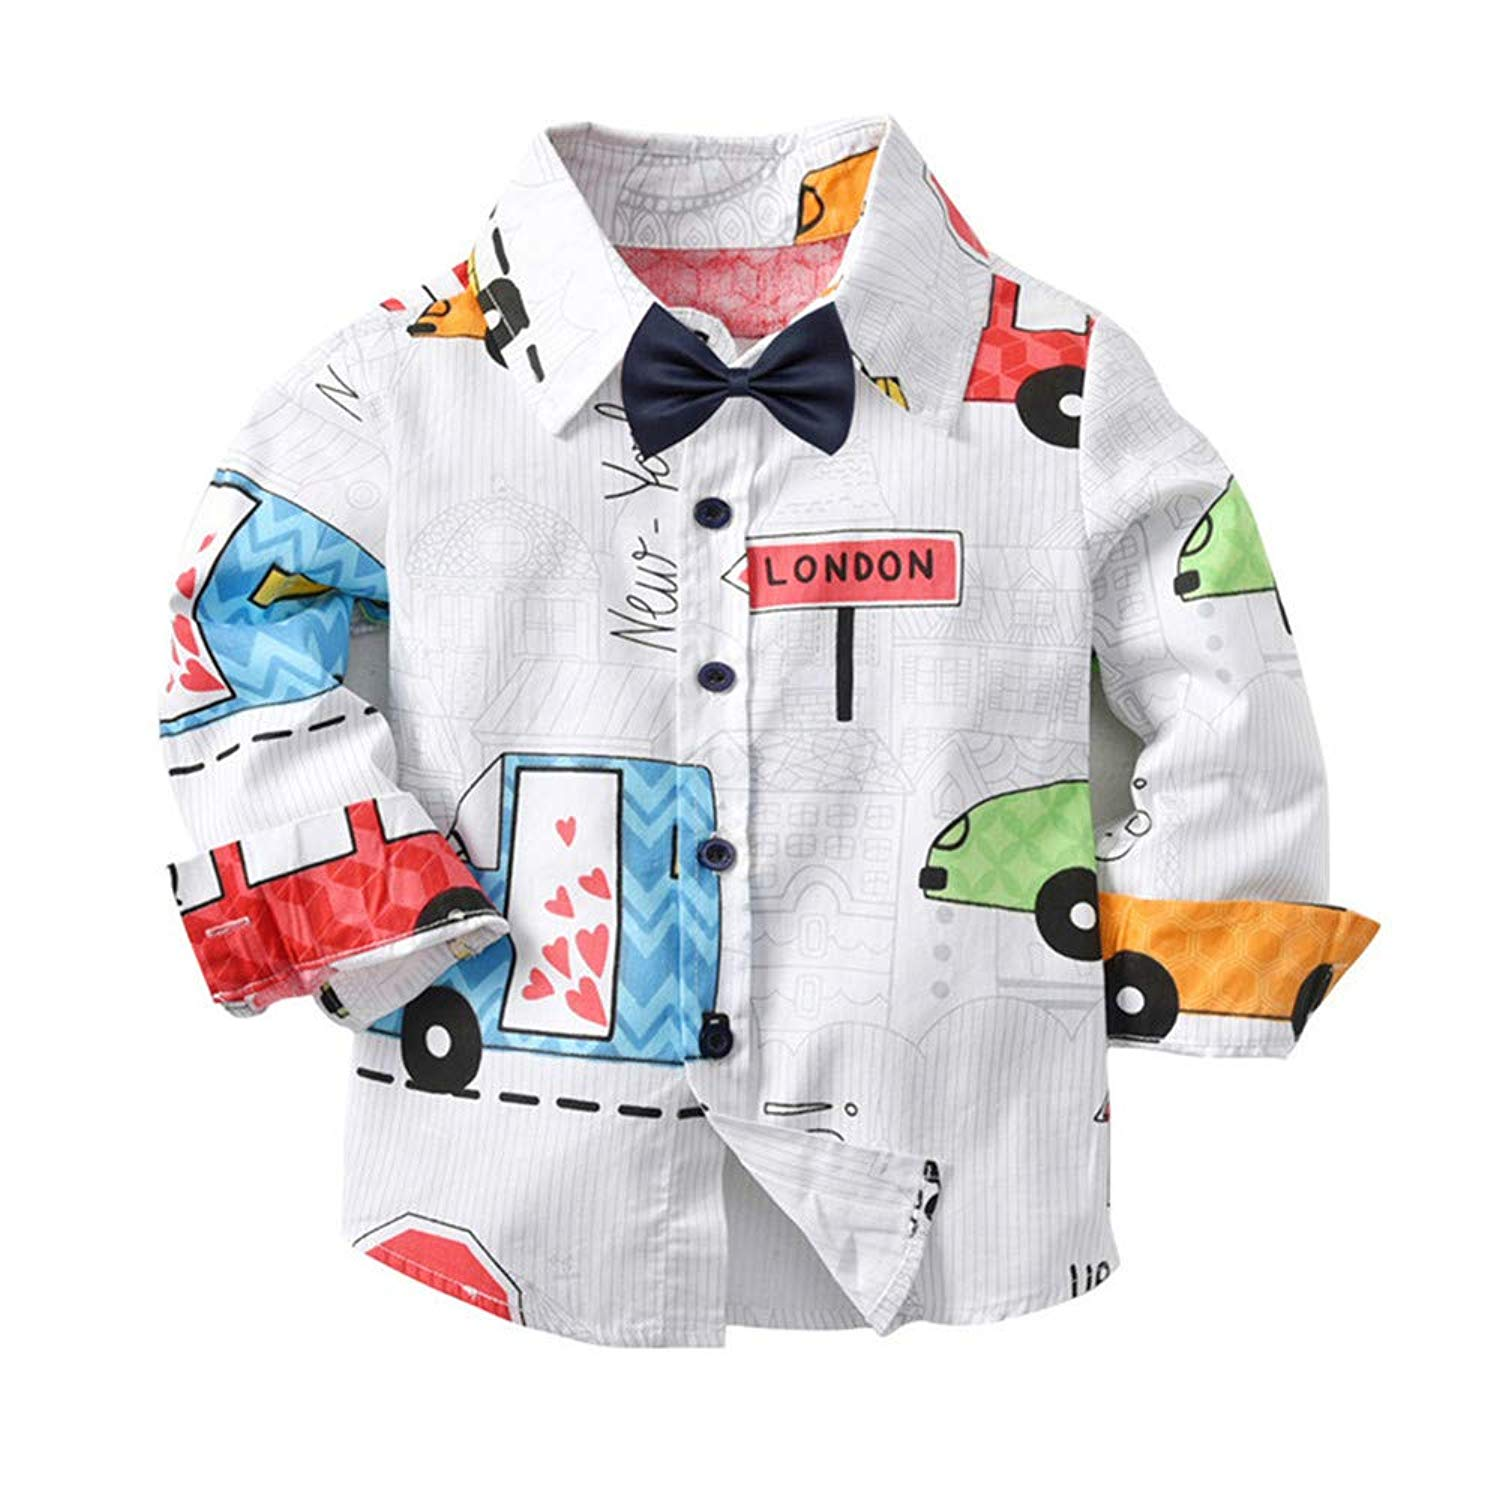 dc381193d98 Get Quotations · Moonper Toddler Infant Baby Boys Girls Winter Autumn Warm  Long Sleeves Gentleman Tops Tie Clothes with